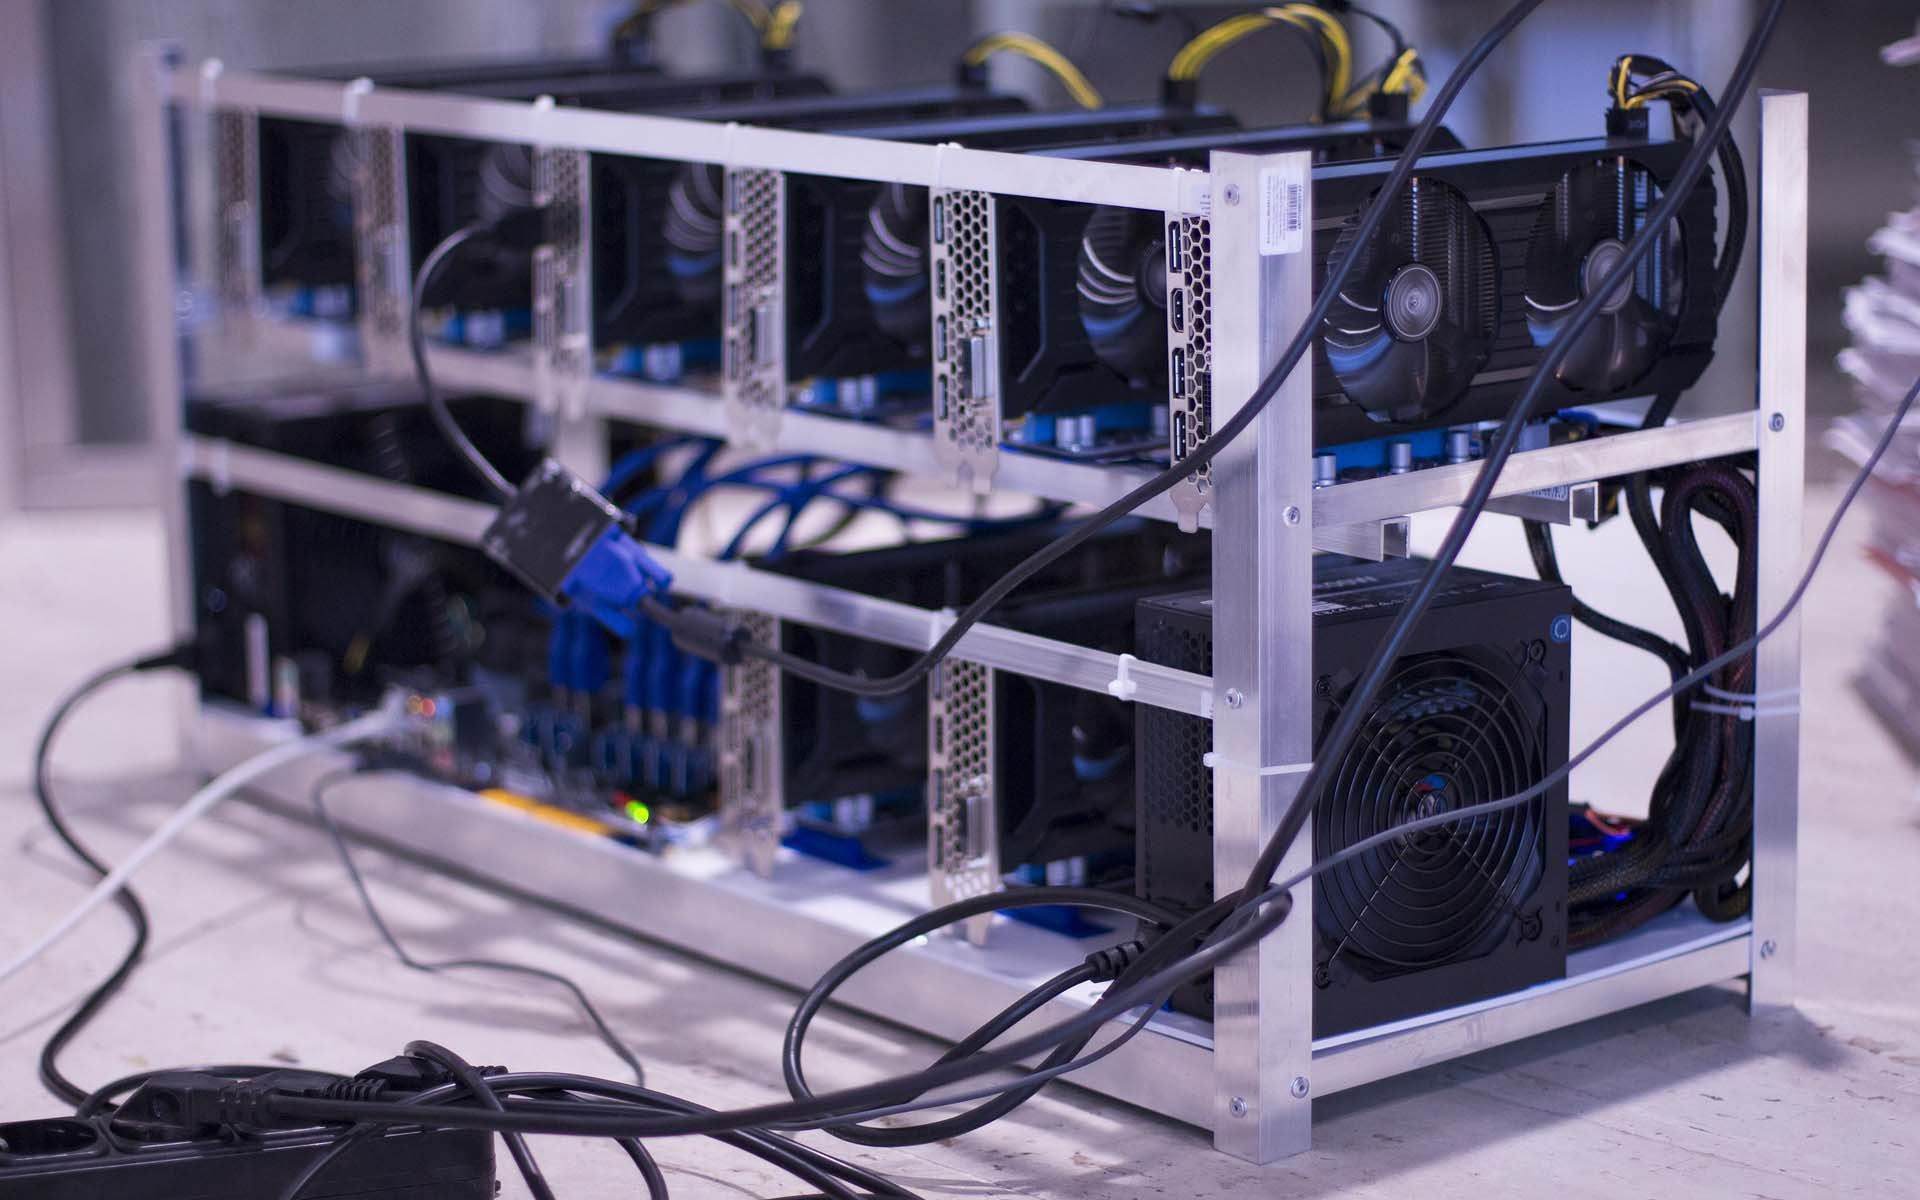 Chinese Bitcoin Miners Largely Unaffected by Volatility and Regulation